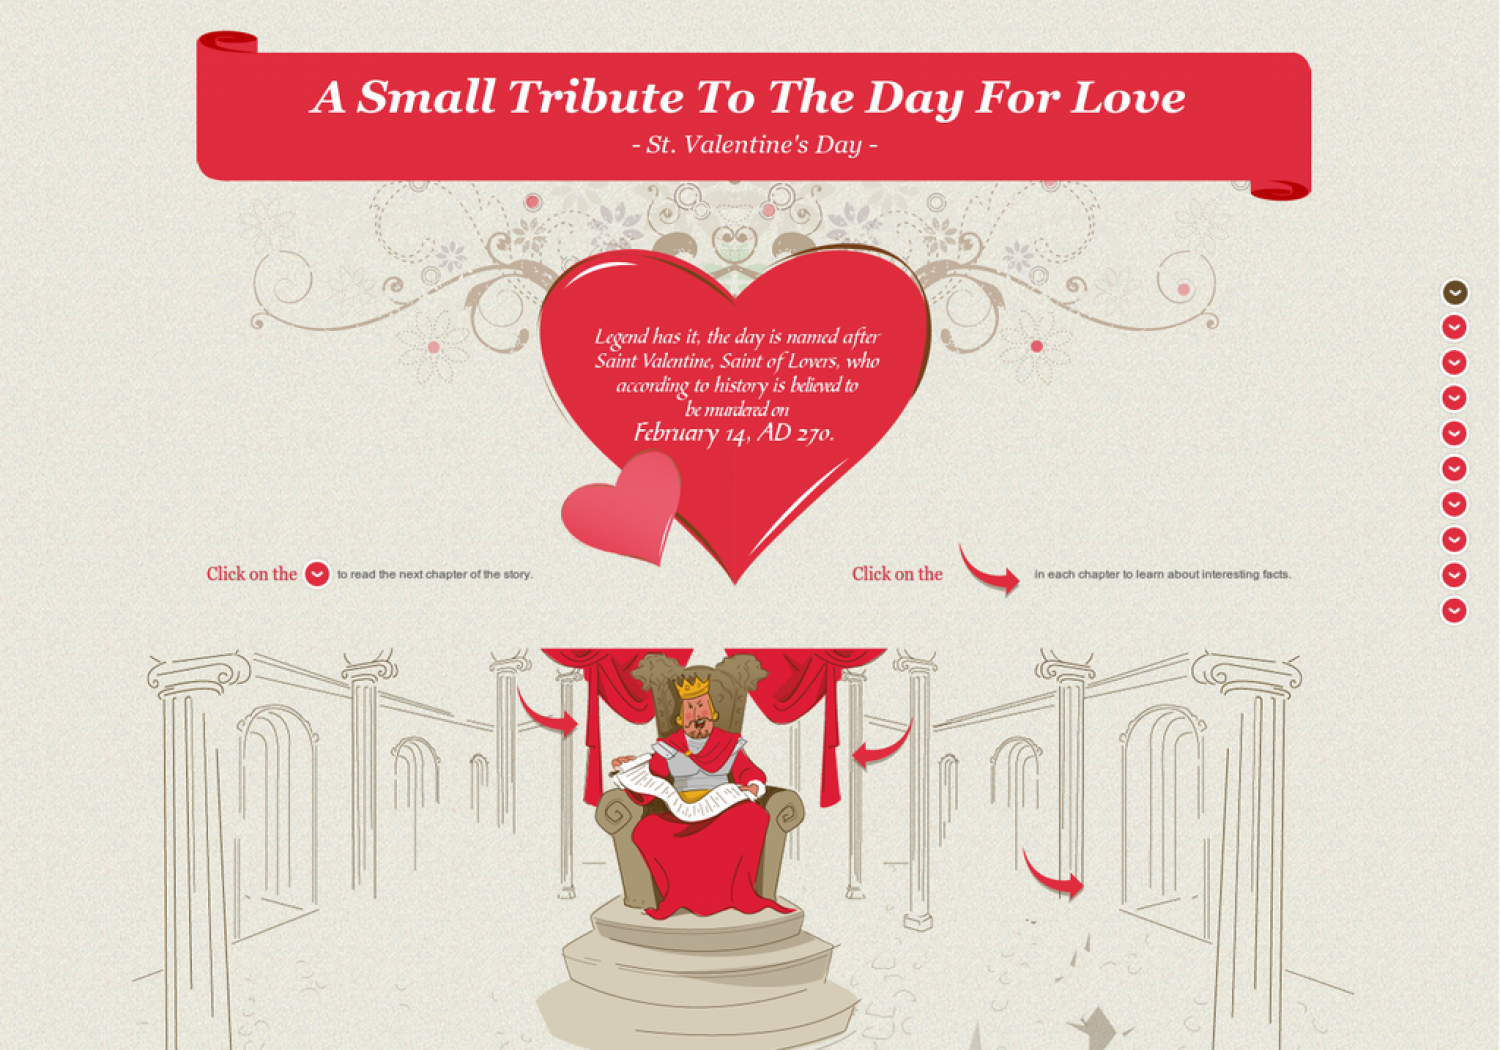 Saint Valentine's Day: A Small Tribute to the Day for Love Infographic